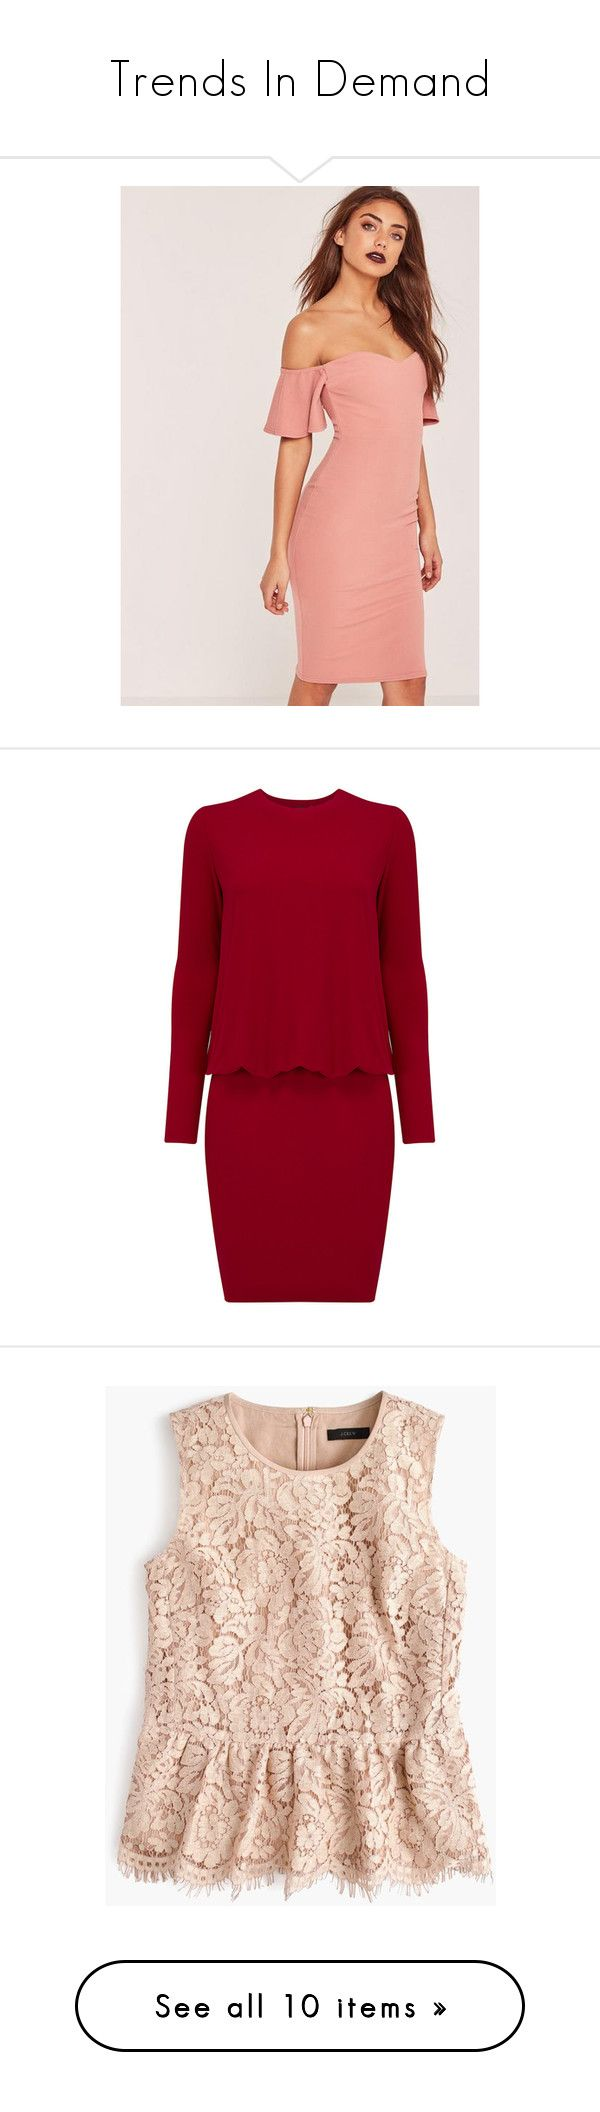 """""""Trends In Demand"""" by marinavl ❤ liked on Polyvore featuring dresses, rose, body con dresses, midi cocktail dress, red bodycon dress, pink dress, red dress, red, long-sleeve maxi dresses and long fitted dresses"""